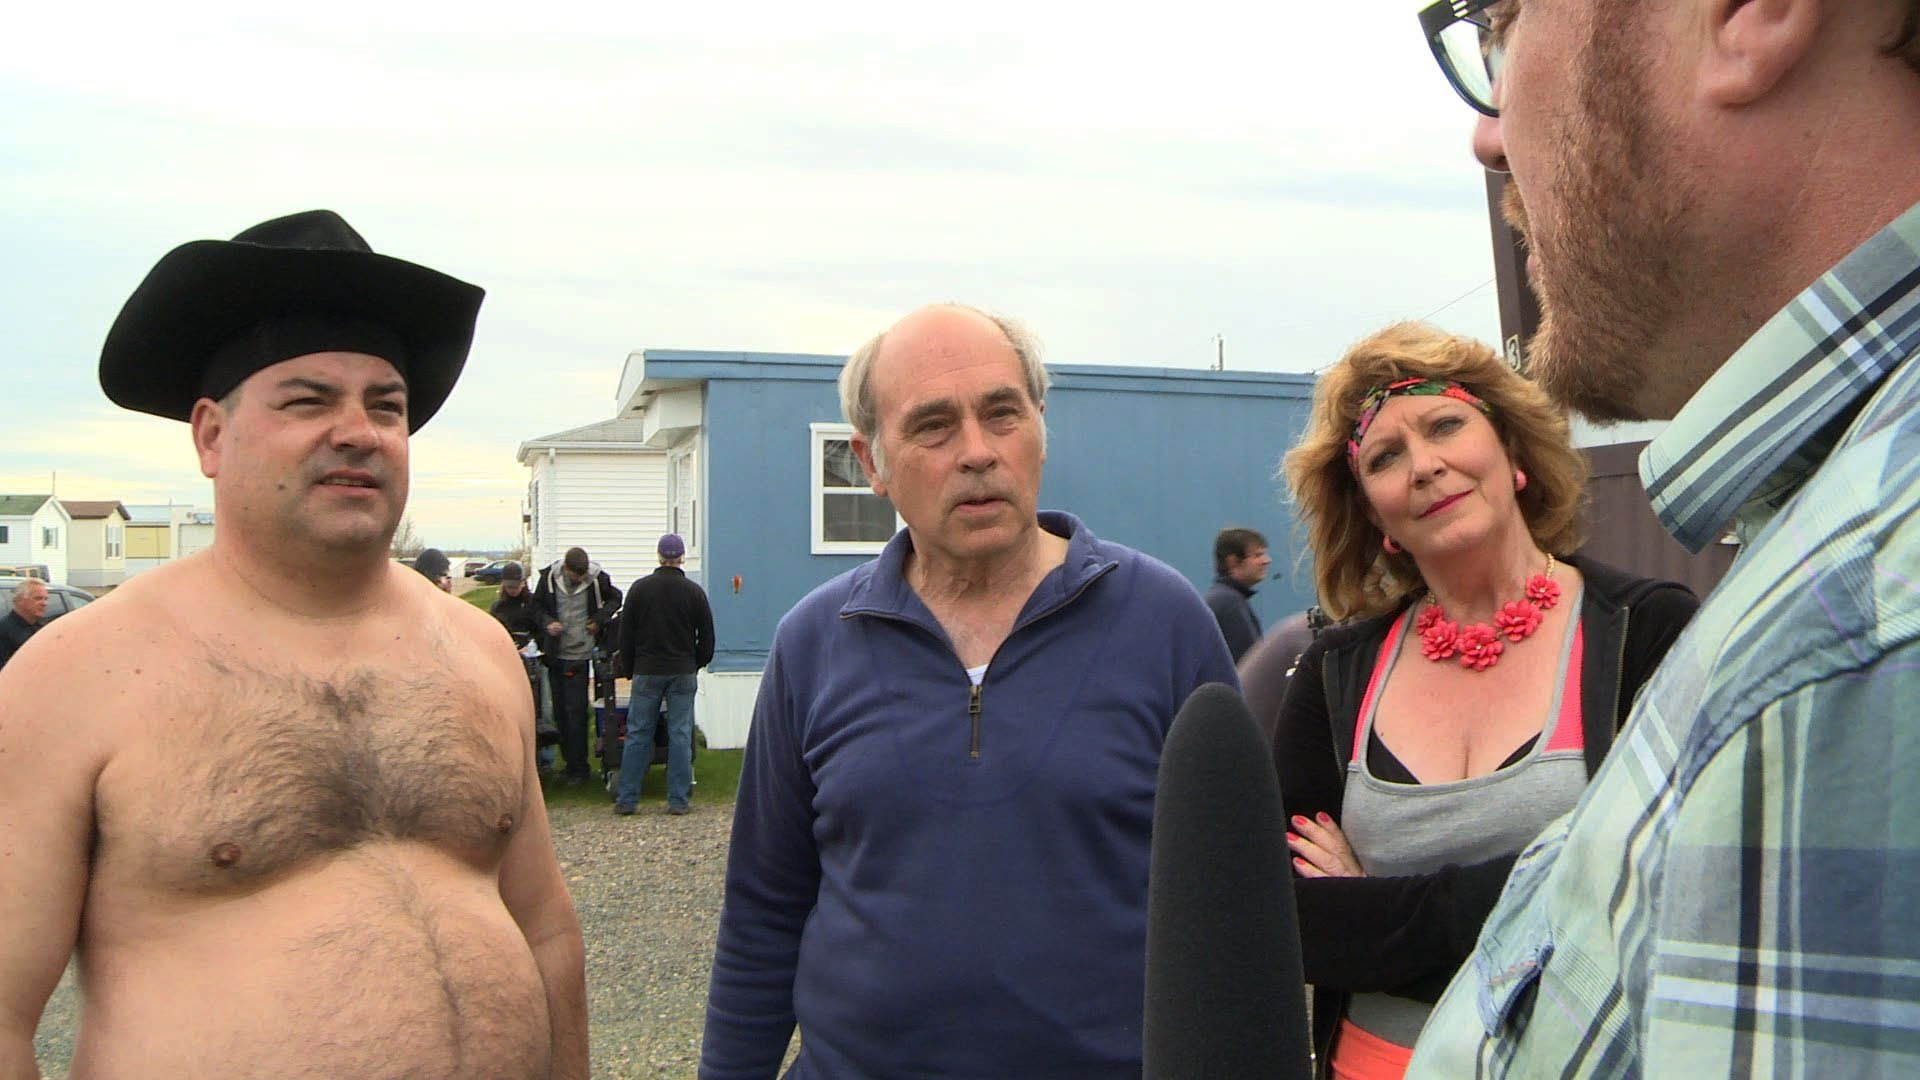 Trailer Park Boys Season 9 On Set Day 1 With Images Trailer